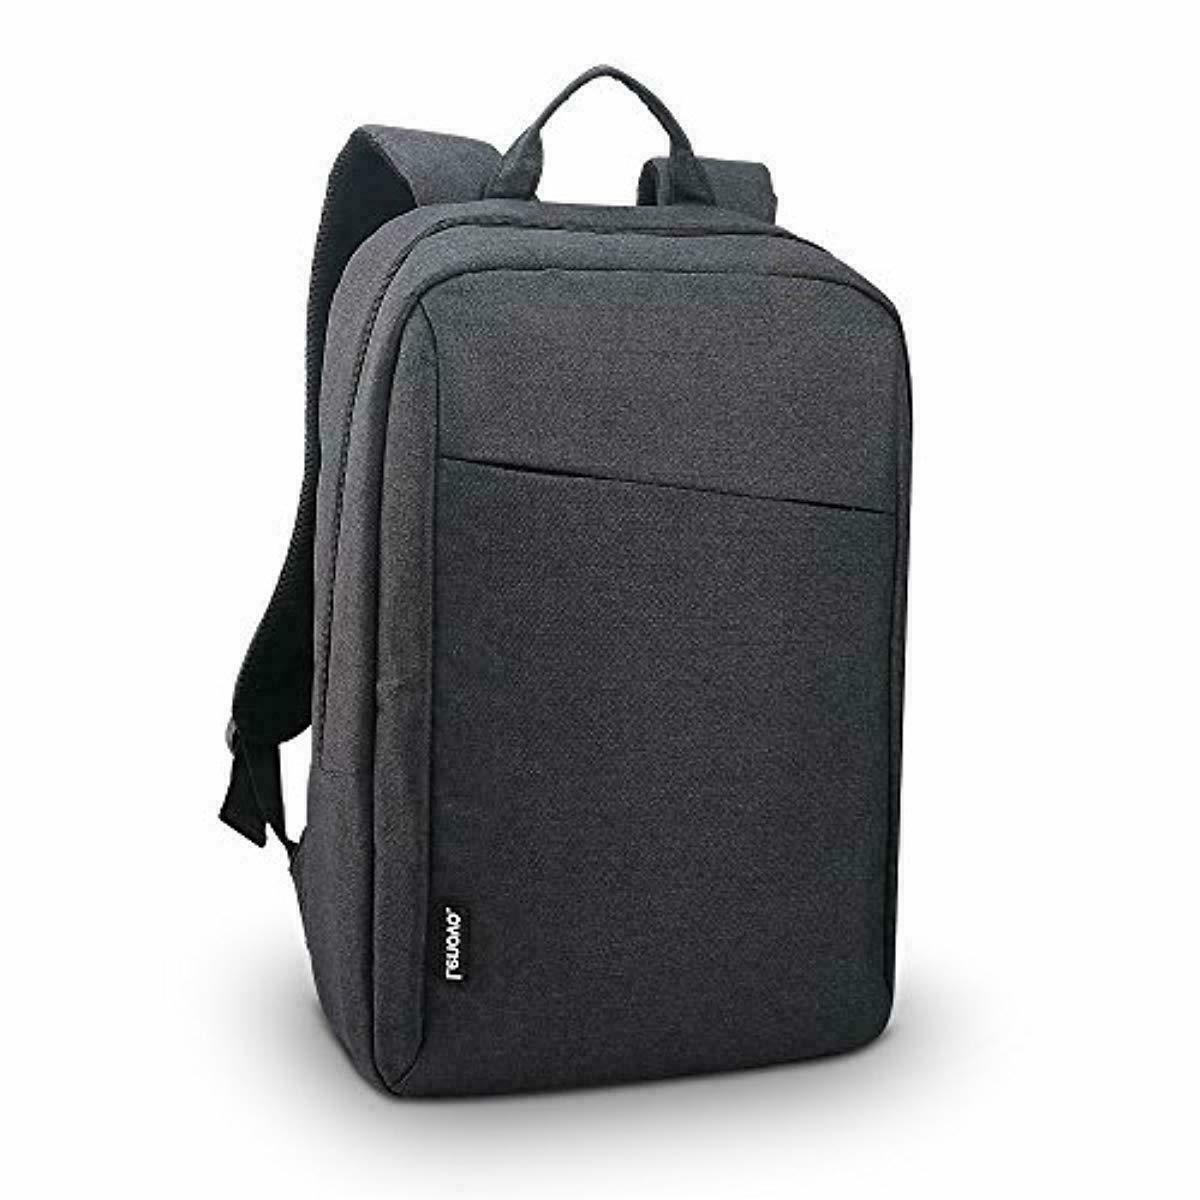 Lenovo Backpack B210, fits Laptop Tablet,